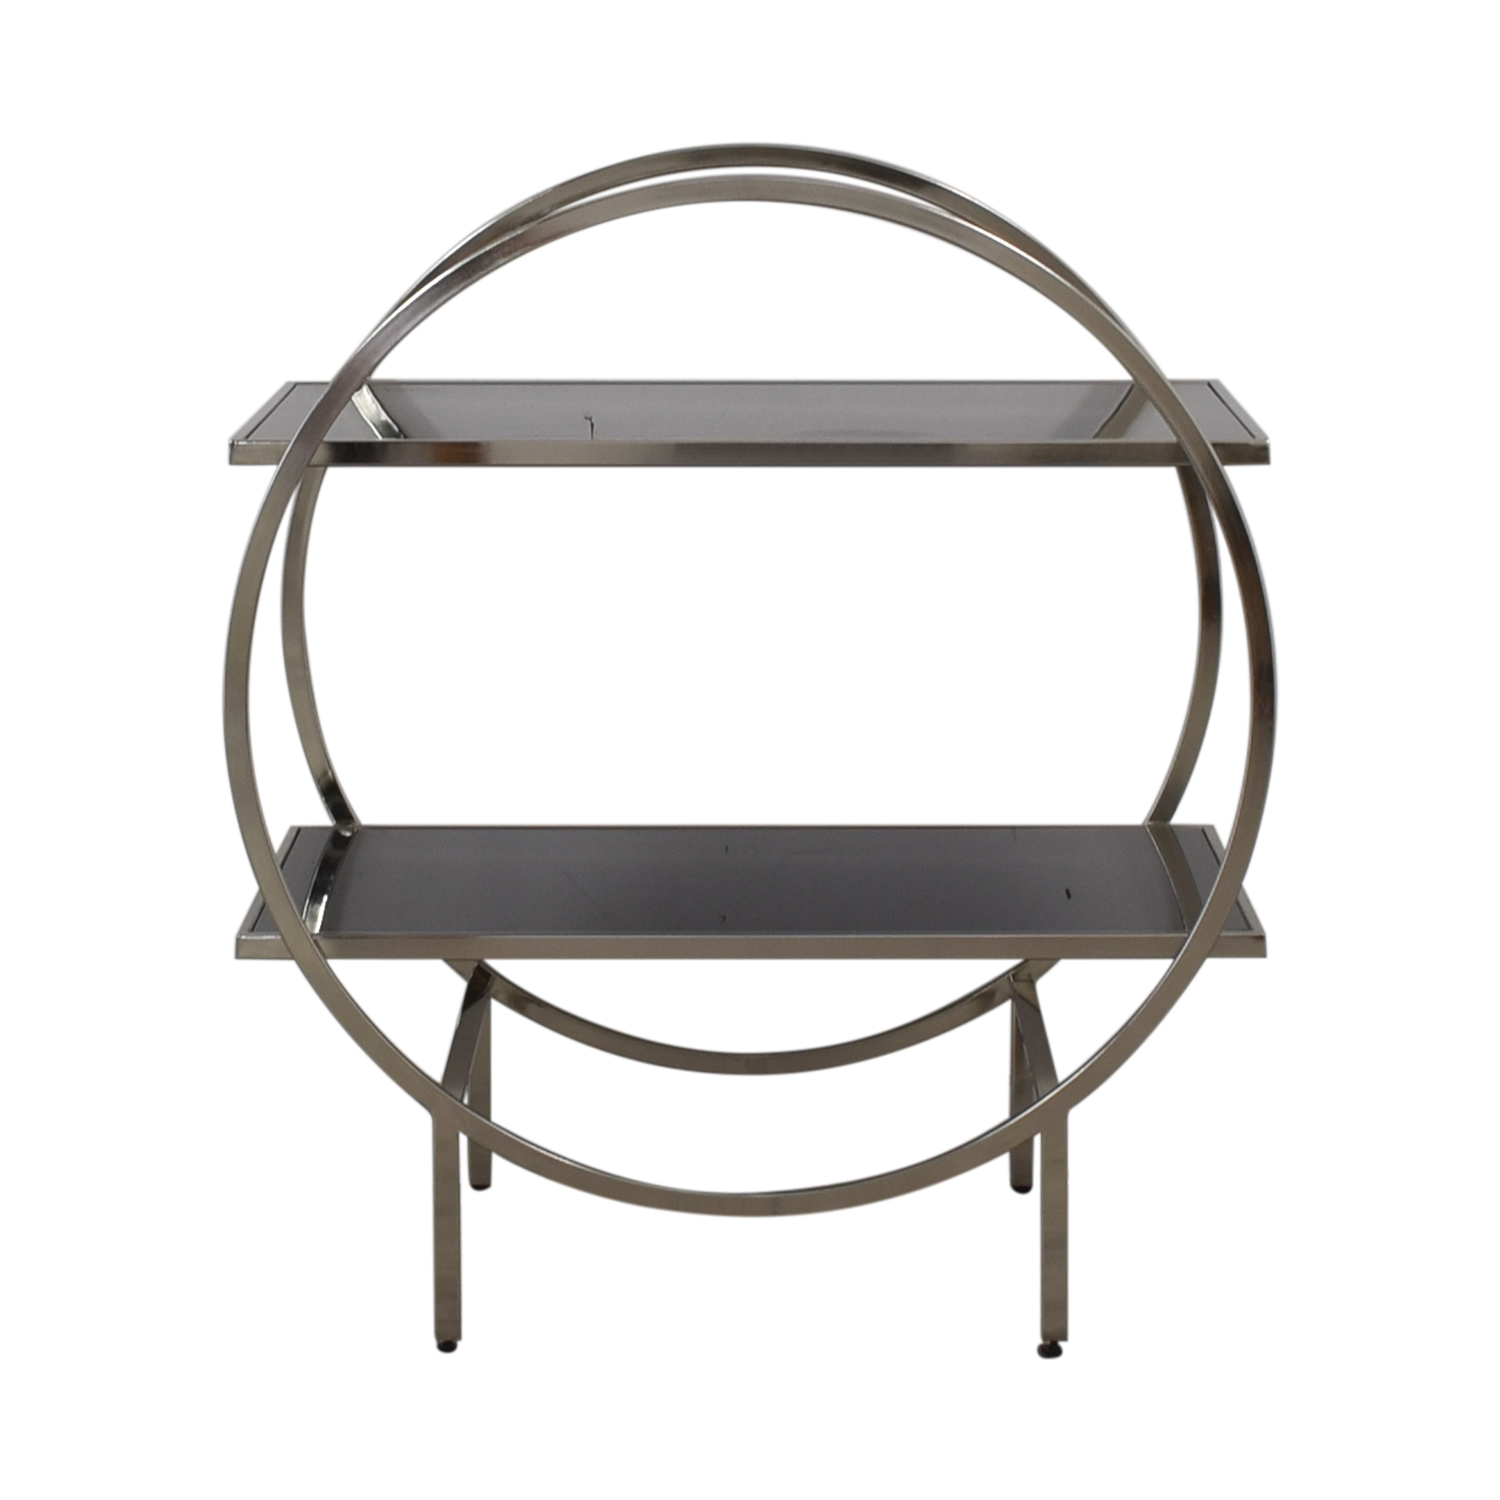 Black and Chrome Circular Bar Cart / Utility Tables